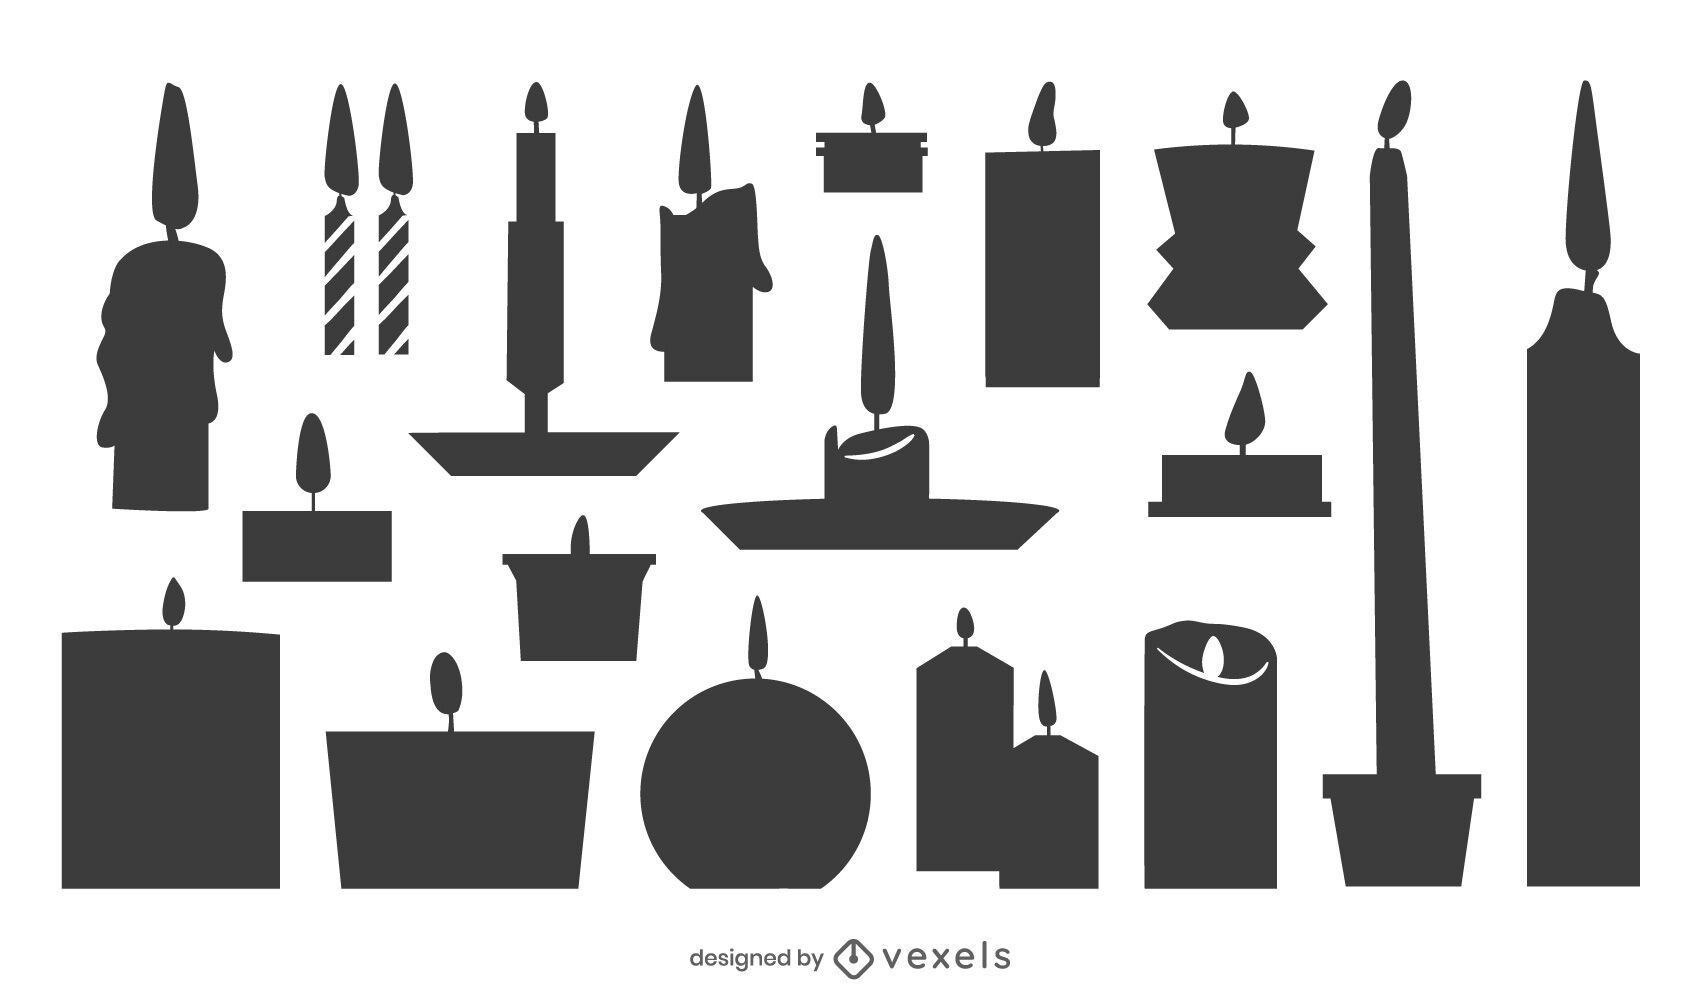 Candle Silhouette Design Pack